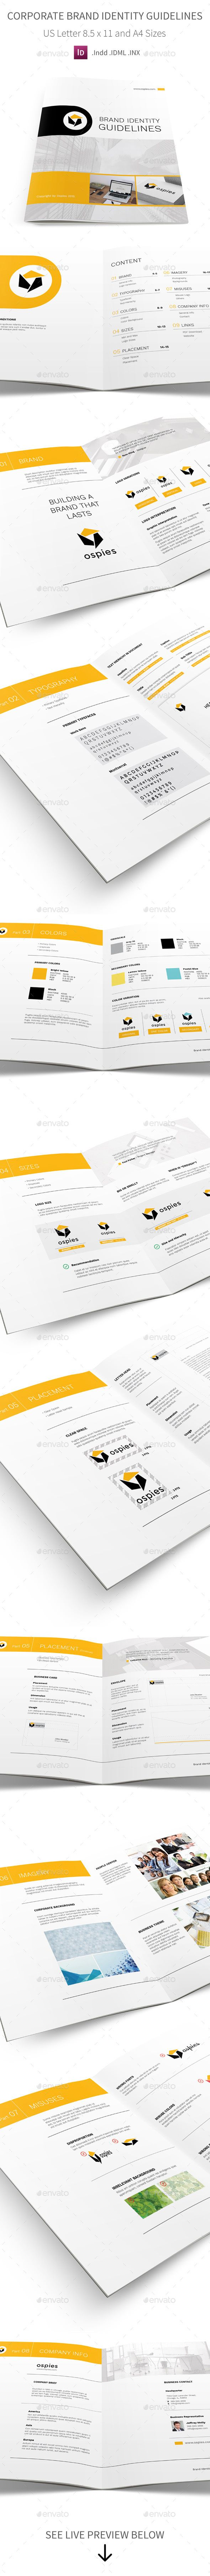 Corporate Brand Identity Guidelines Template #design Download: http://graphicriver.net/item/corporate-brand-identity-guidelines/13637181?ref=ksioks